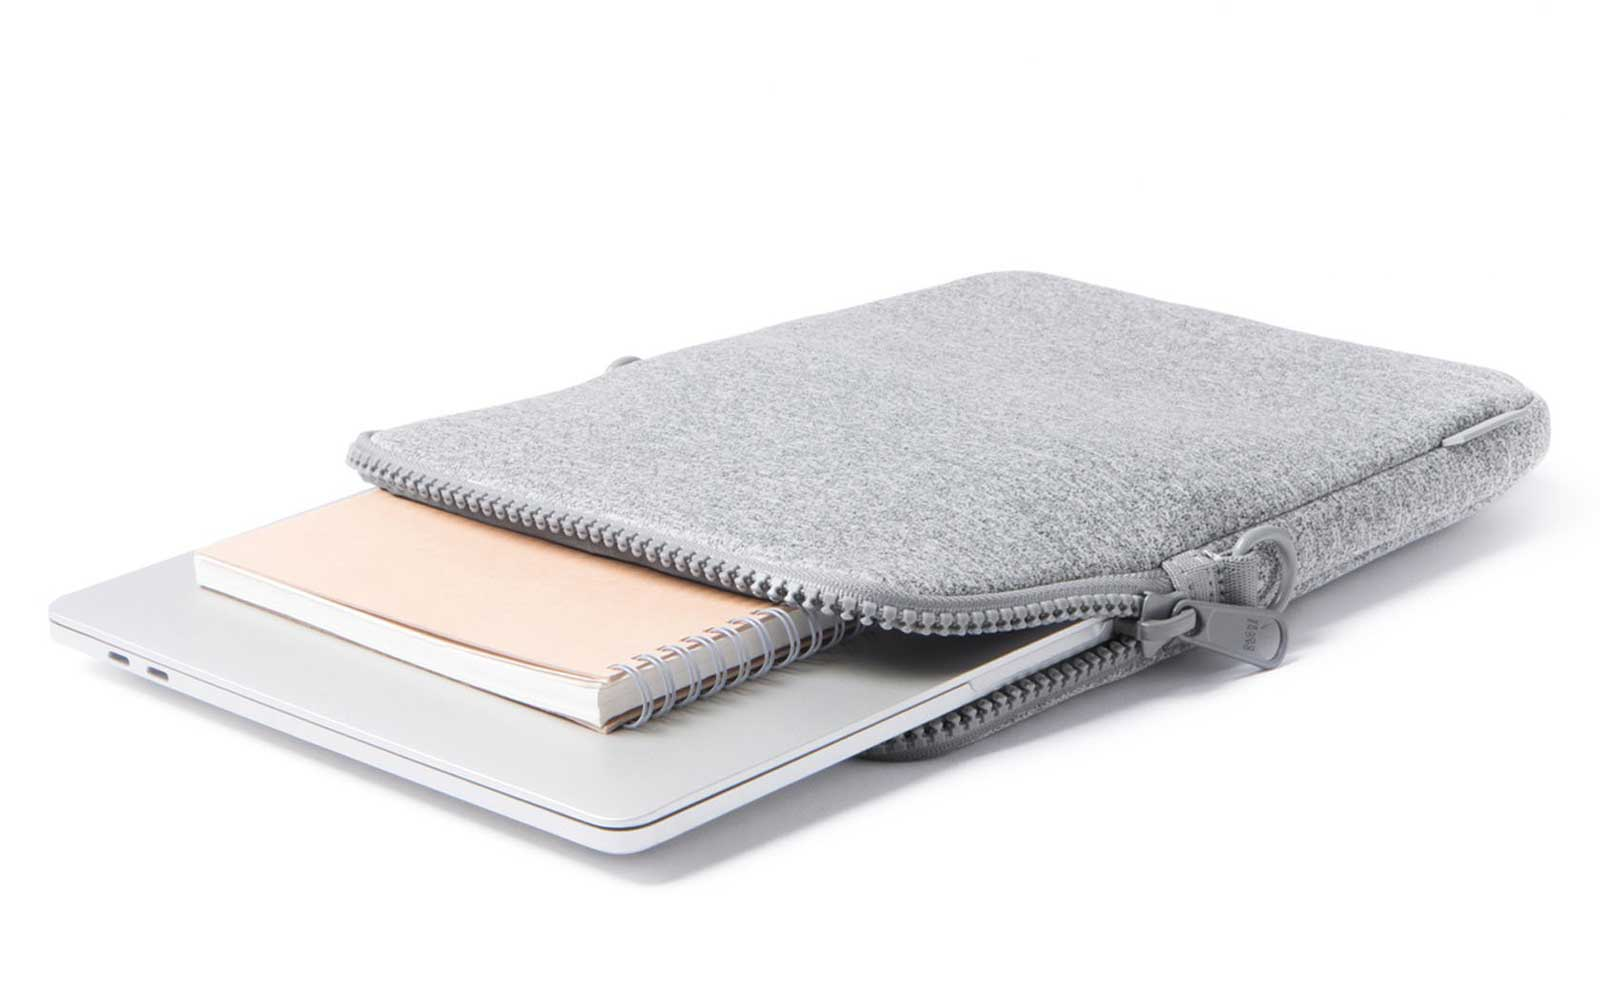 Light Grey Neoprene Laptop Sleeve